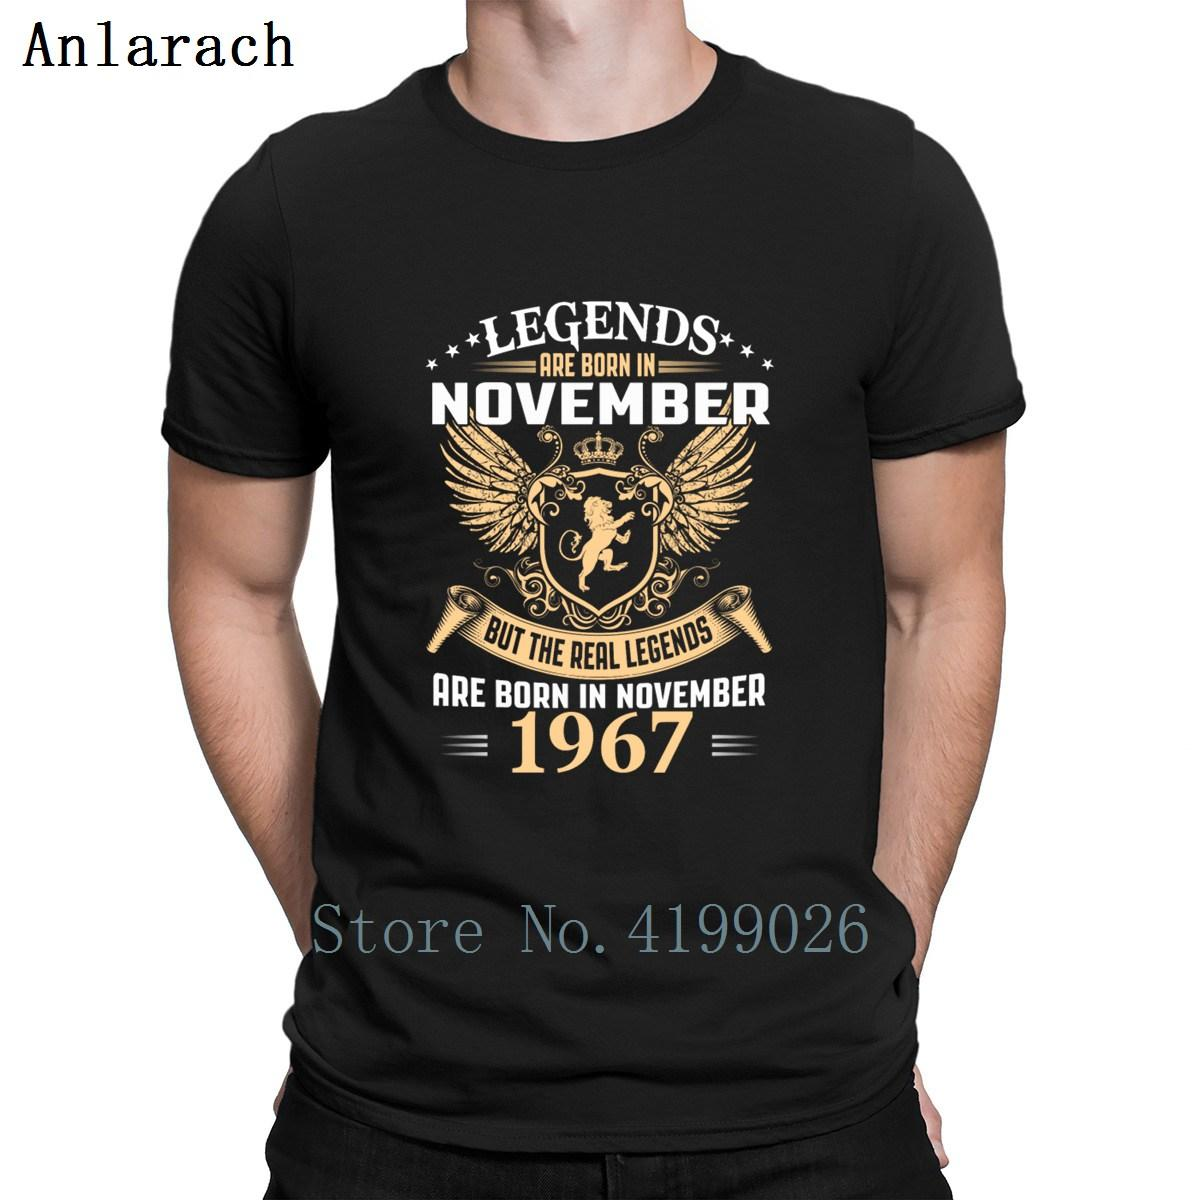 70eb05569 Legends Are Born In November 1967 Tshirt Pictures Character New Clothing  Tshirt For Men Summer Fun Big Sizes Hiphop Tops Funny Screen Tees Shirts  With ...